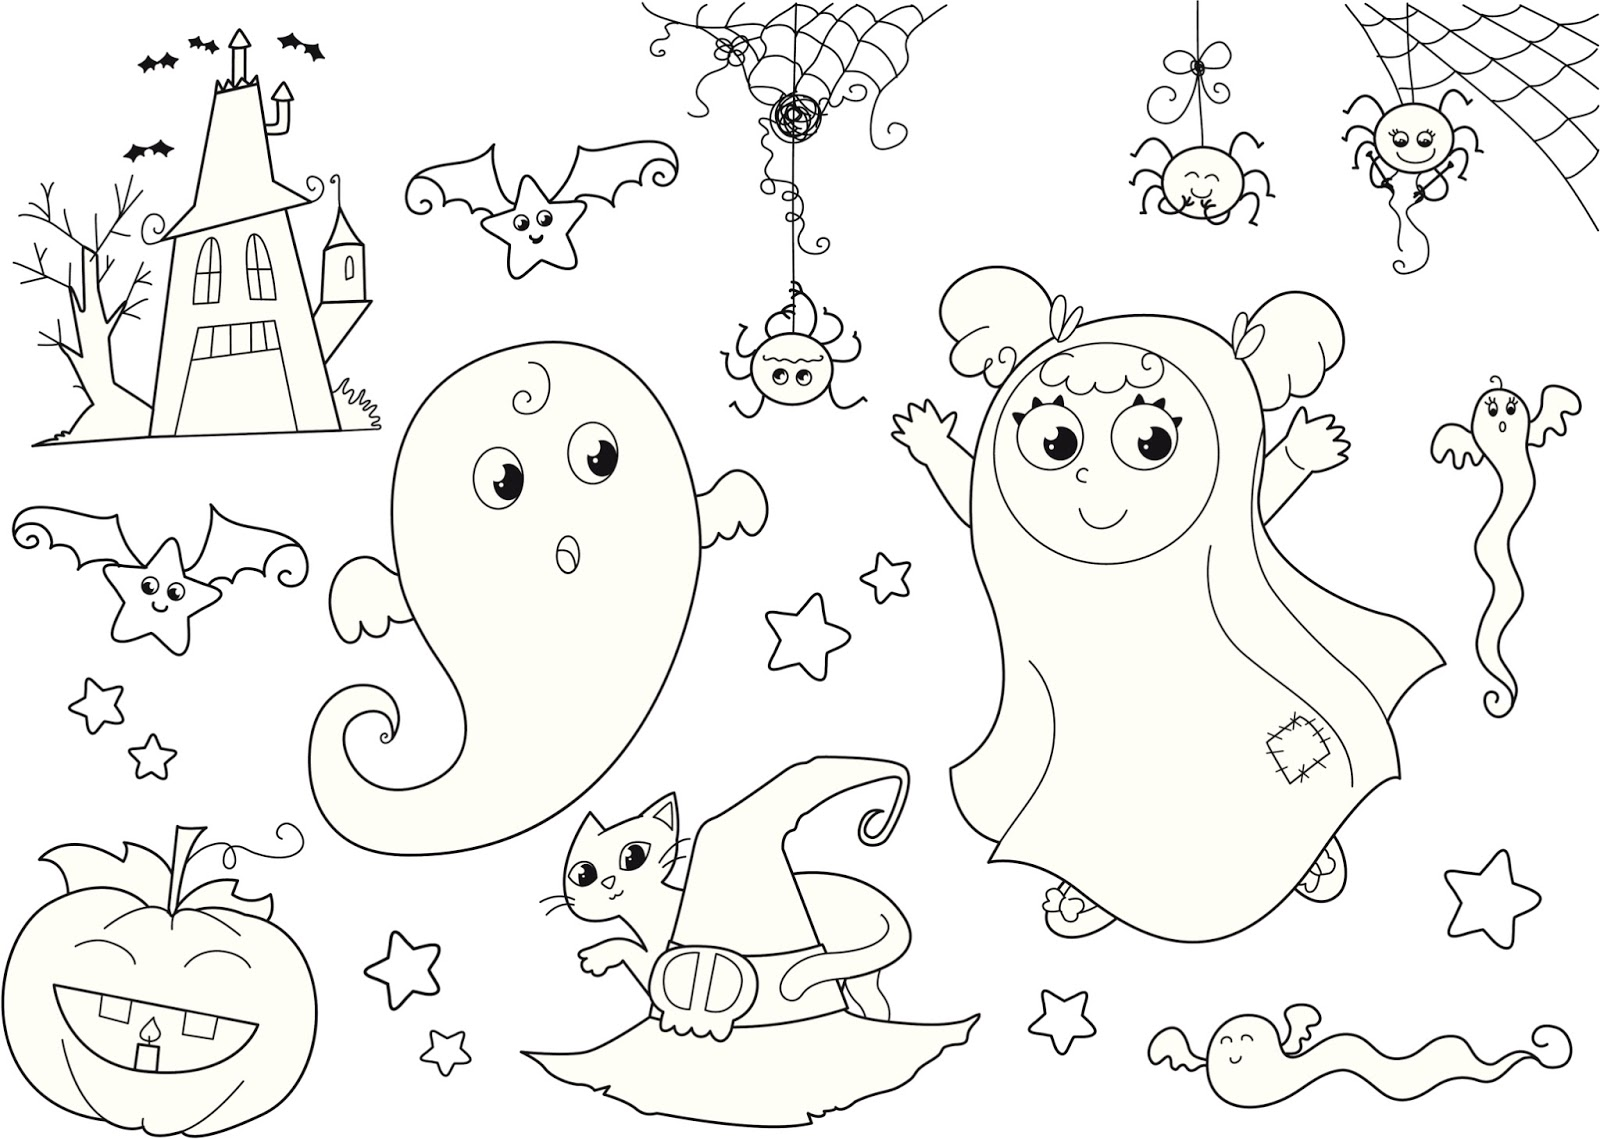 imageslist com halloween images to color 9